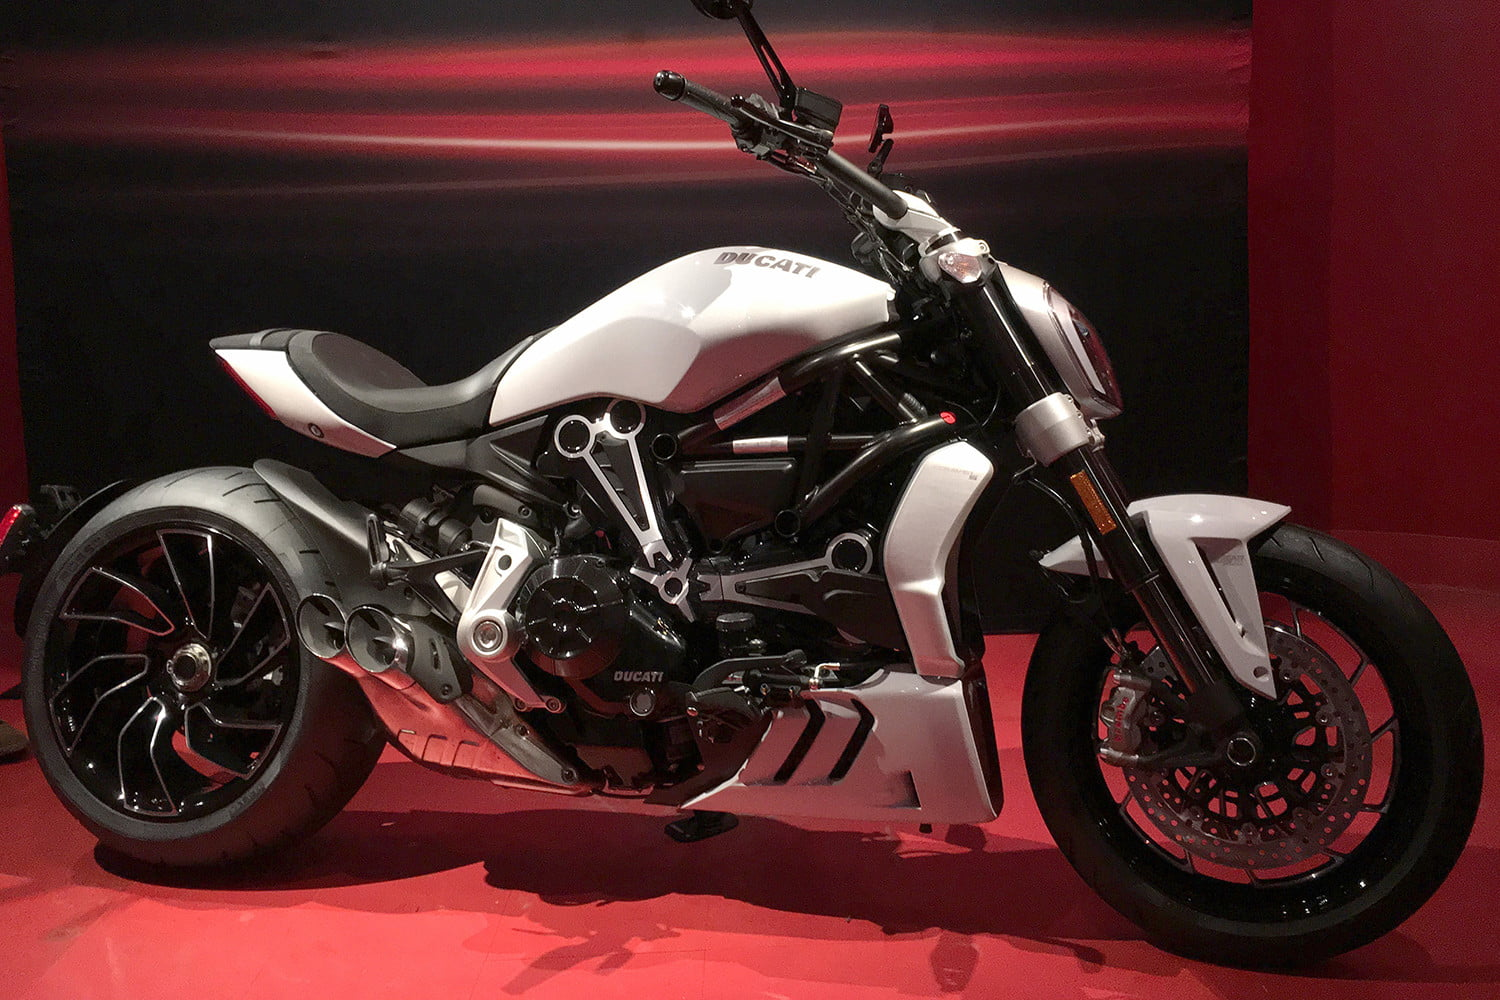 ducati 2018 motorcycle preview xdiavel s full logo2